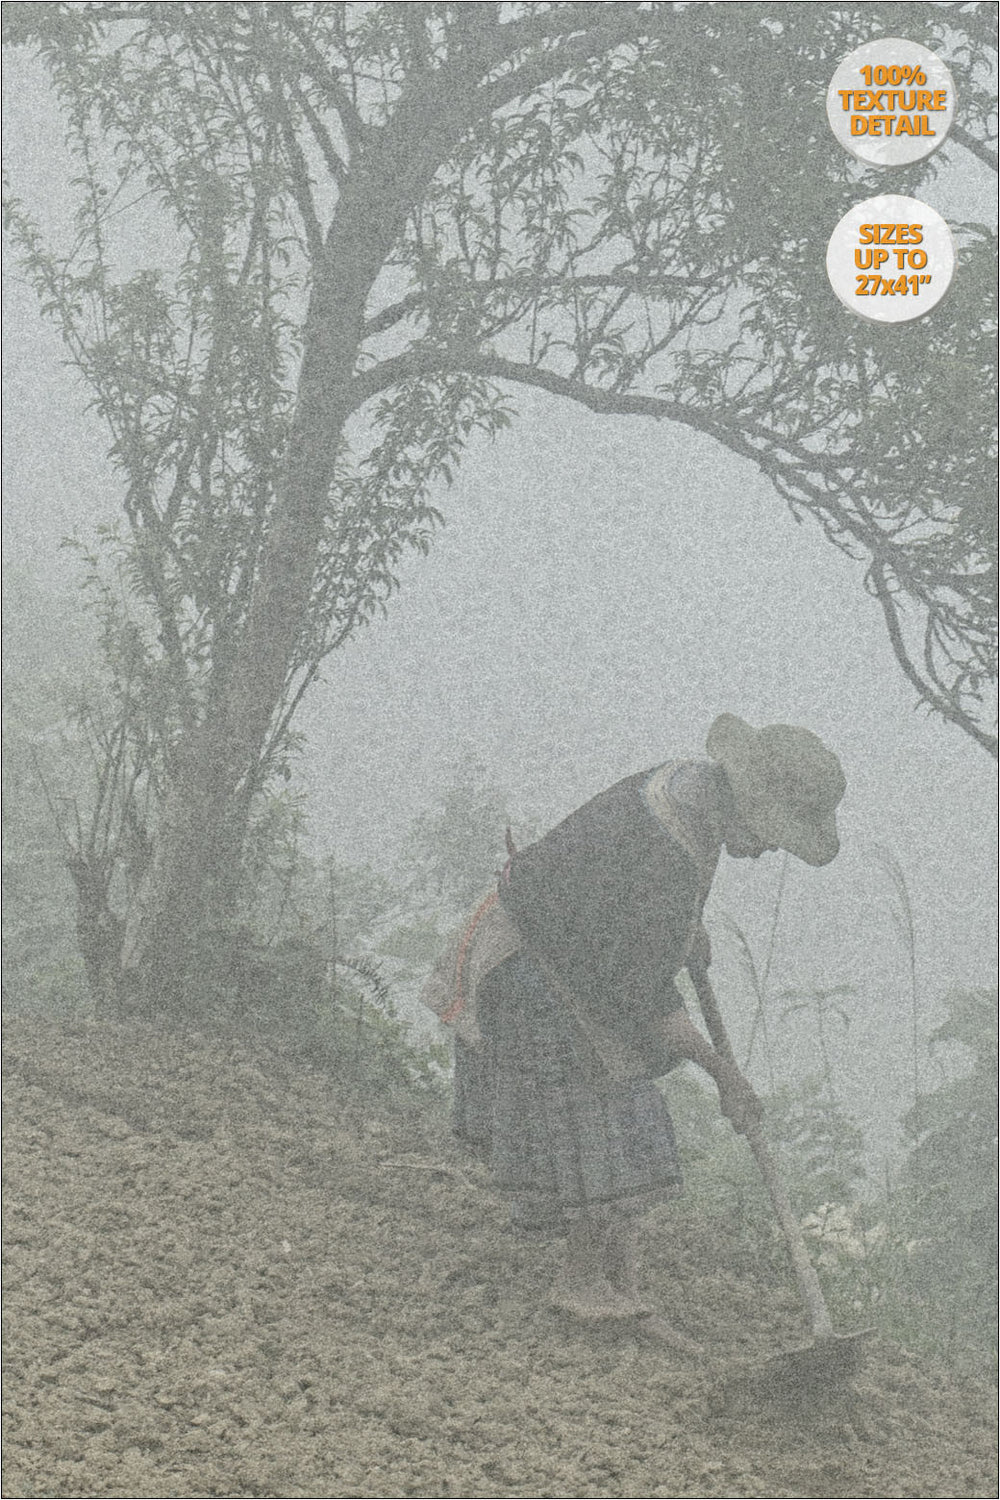 Hmong woman sowing in the fog, Bac Ha, Vietnam. | View at 100% Magnification Detail.